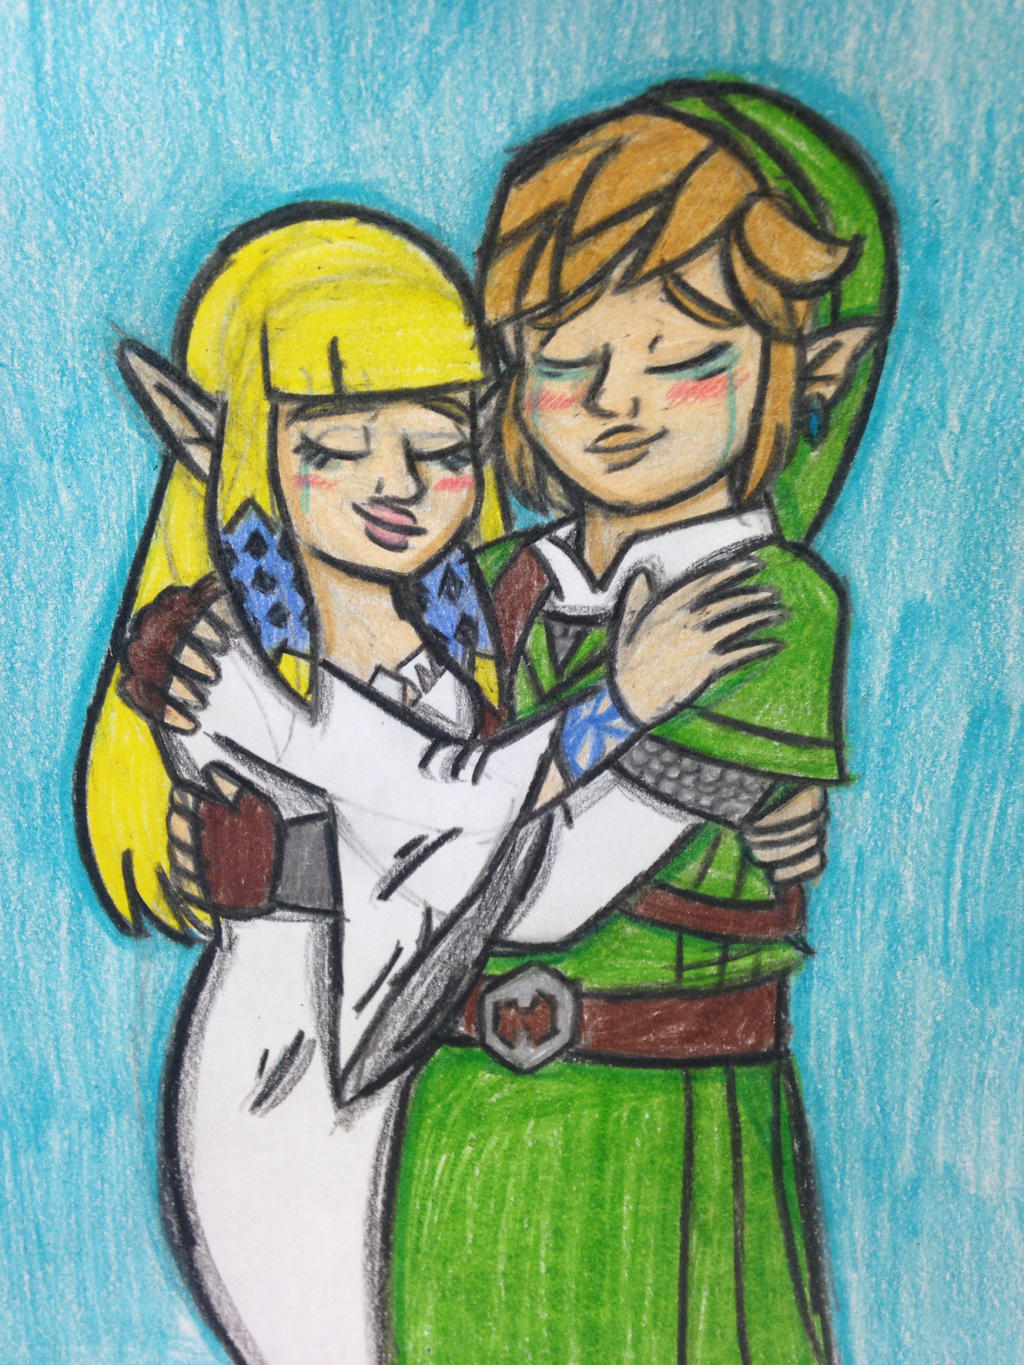 Skyward Sword Zelink by creativetomboy on DeviantArt Zelink Skyward Sword